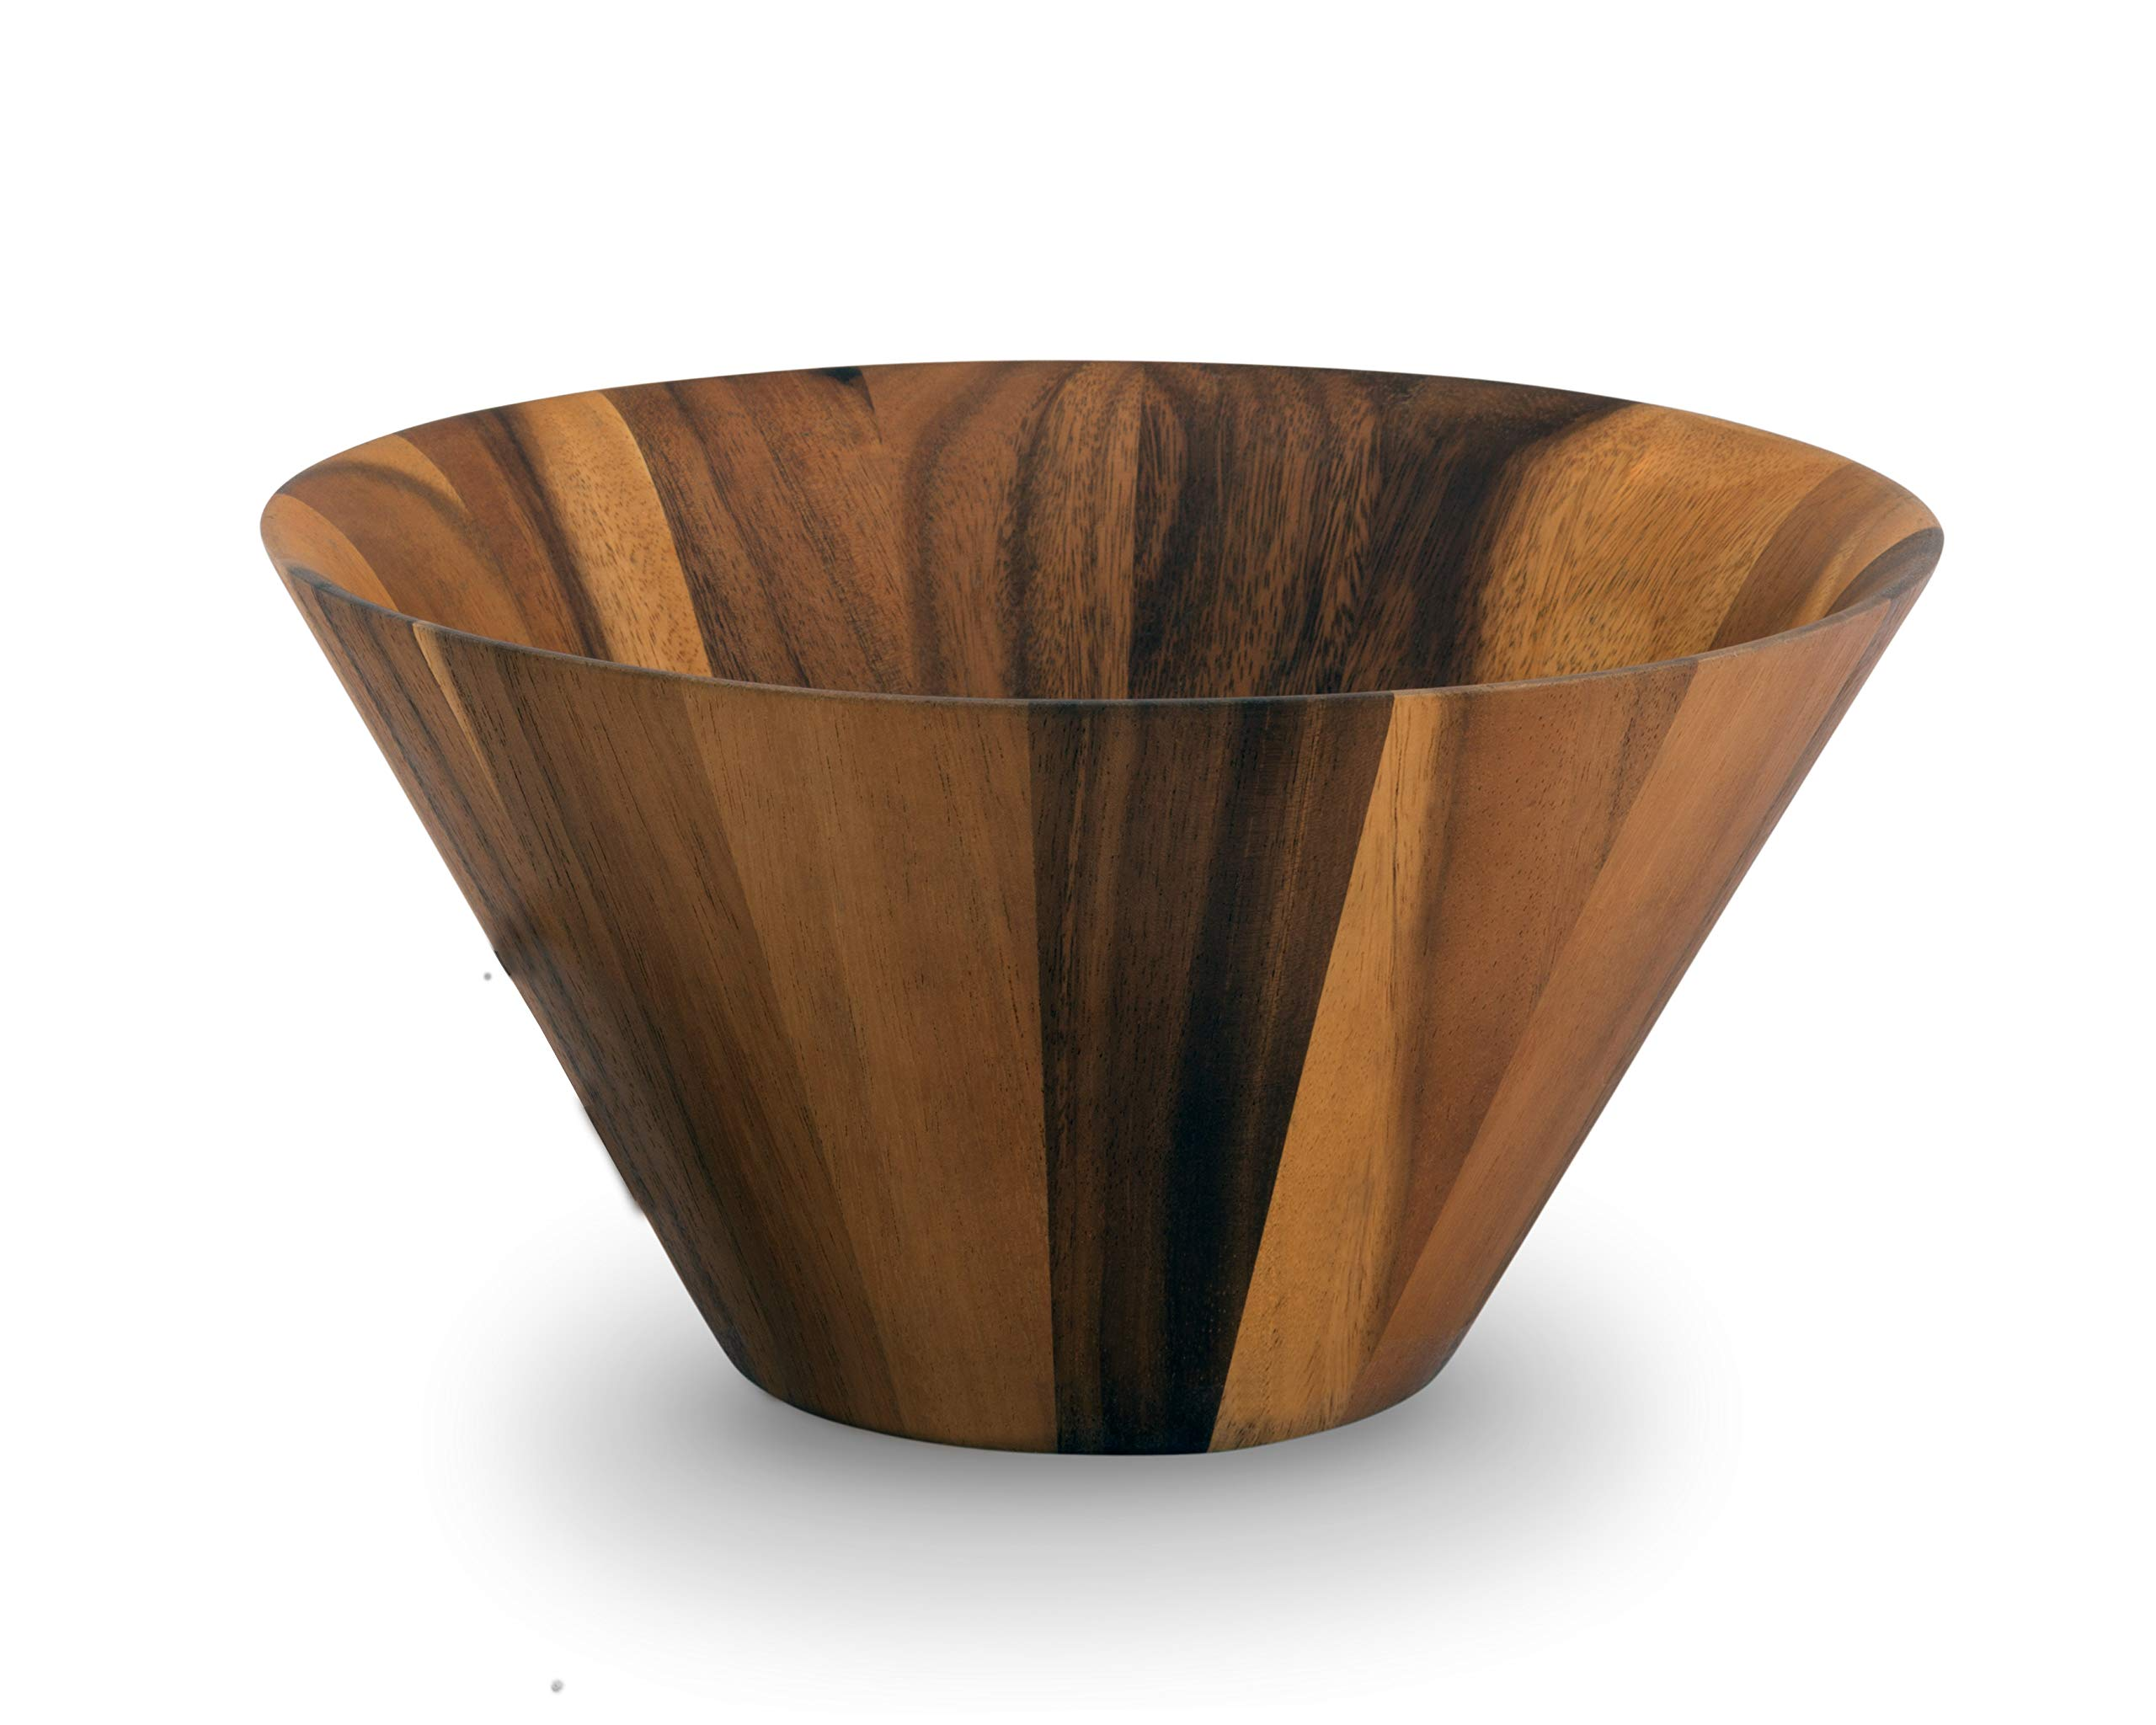 Arthur Court Acacia Wood Serving Bowl for Fruits or Salads Stright Angle Shape Style Large 12'' Diameter x 7.5'' Tall Wooden Single Bowl